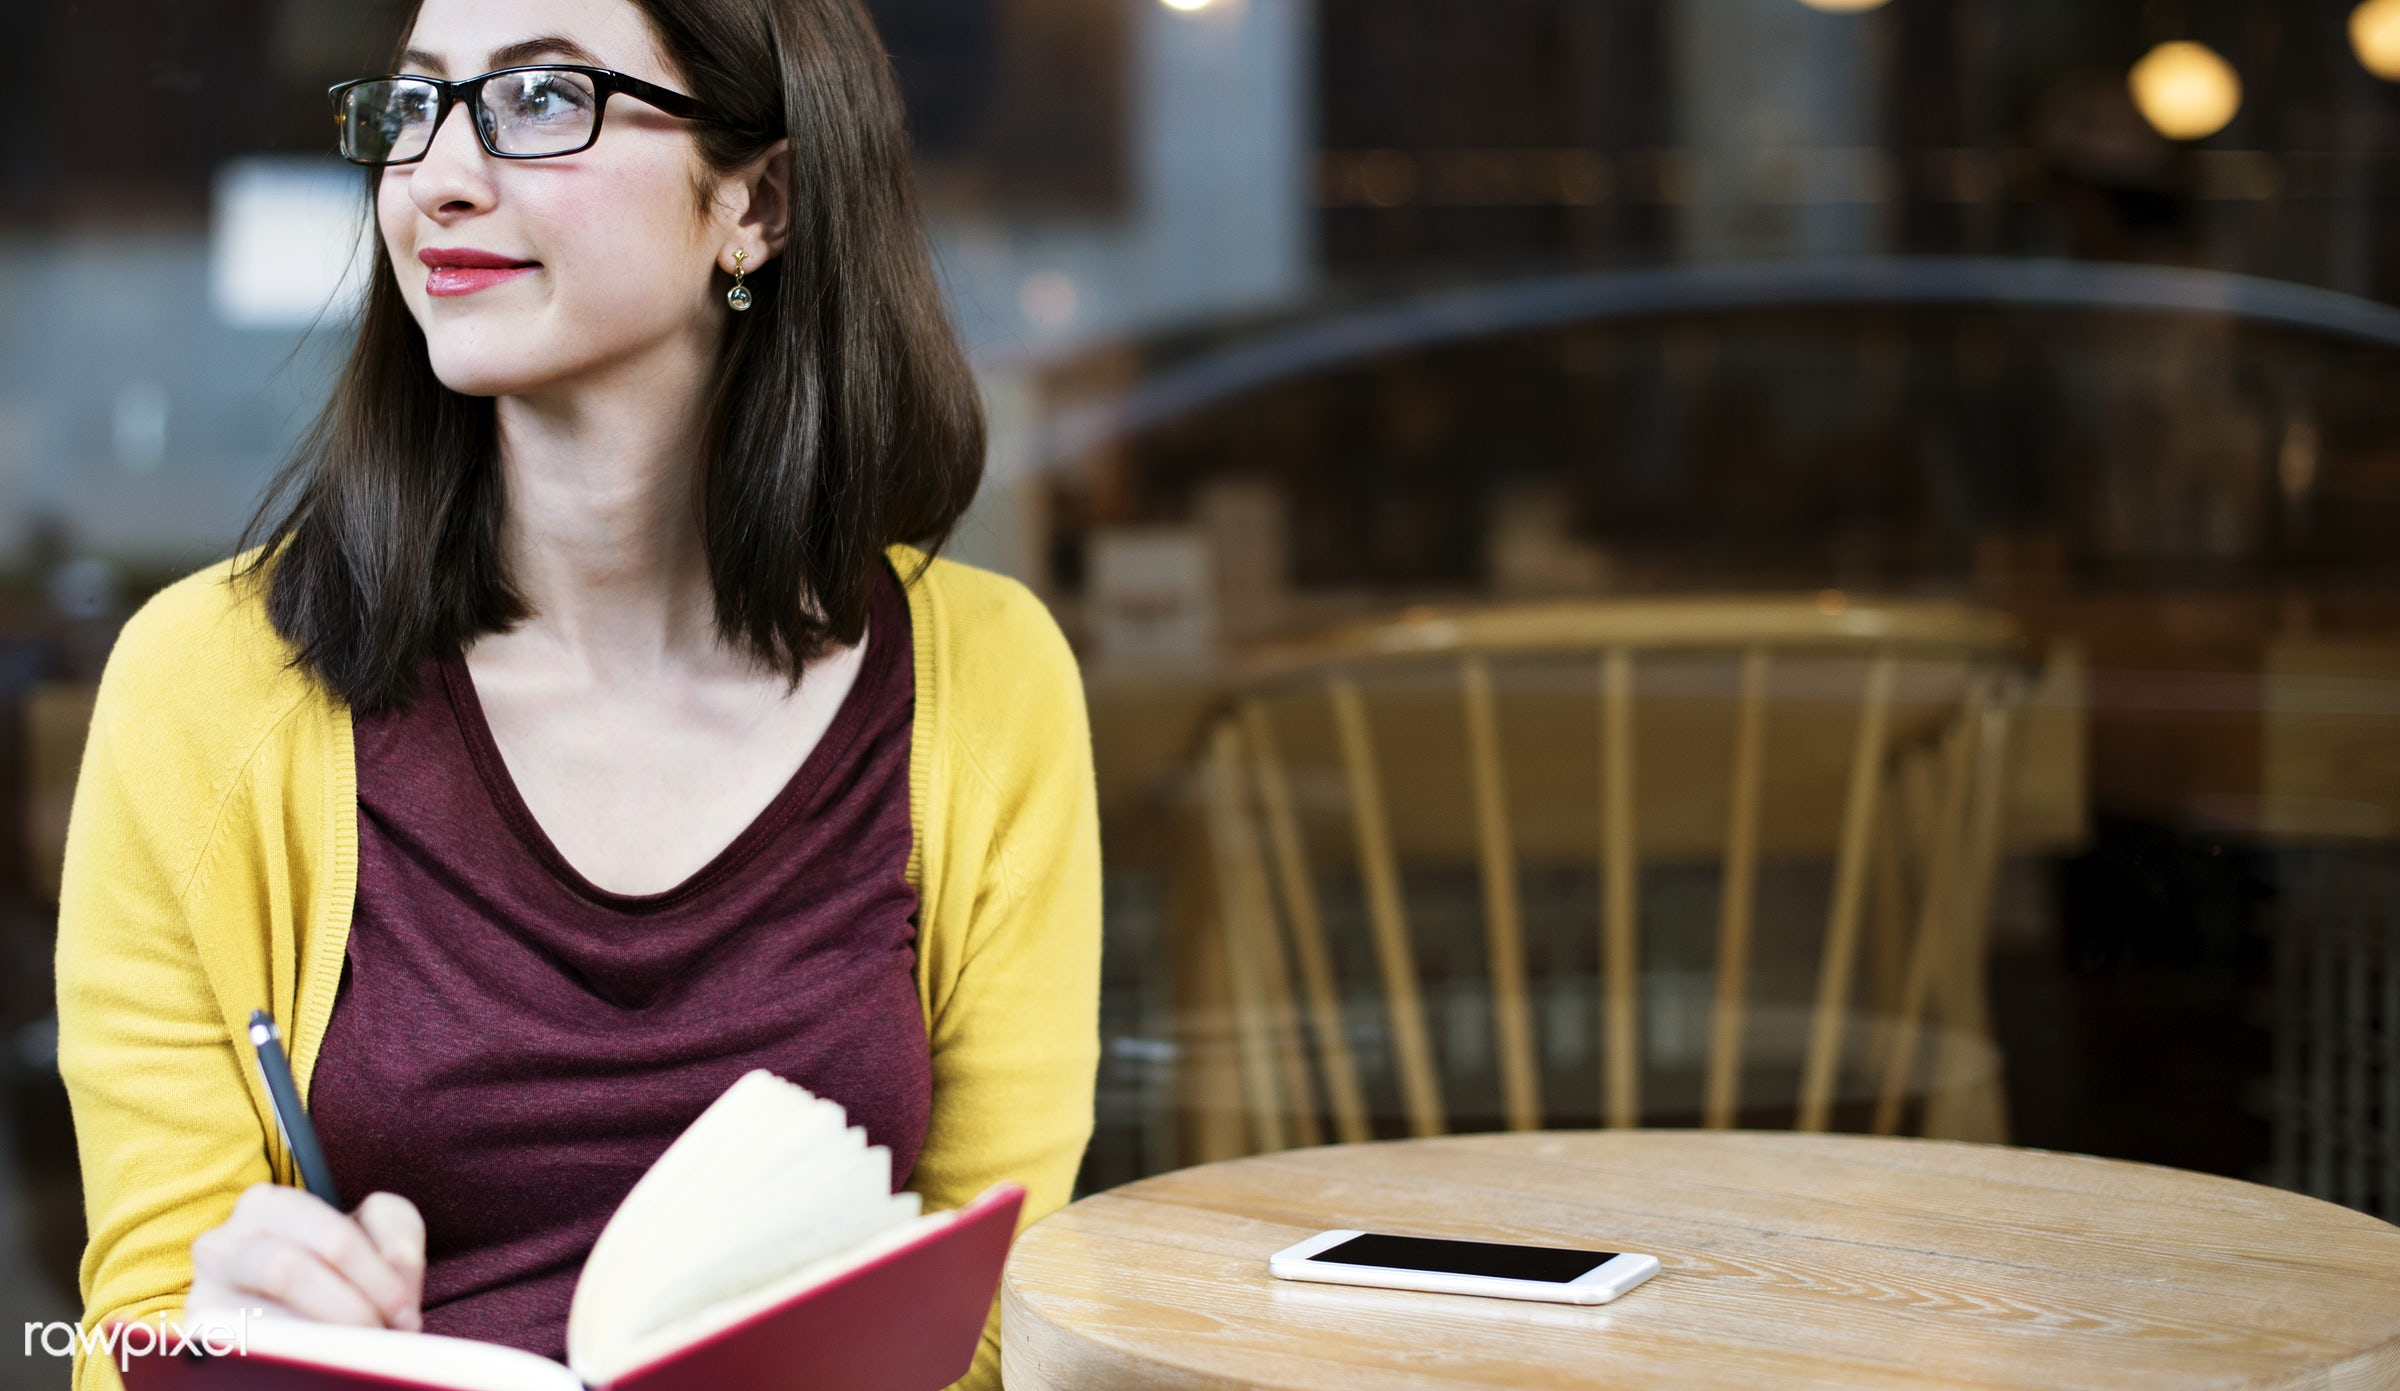 adult, alone, book, cafe, casual, college, communication, connection, digital device, education, girl, glasses, global...